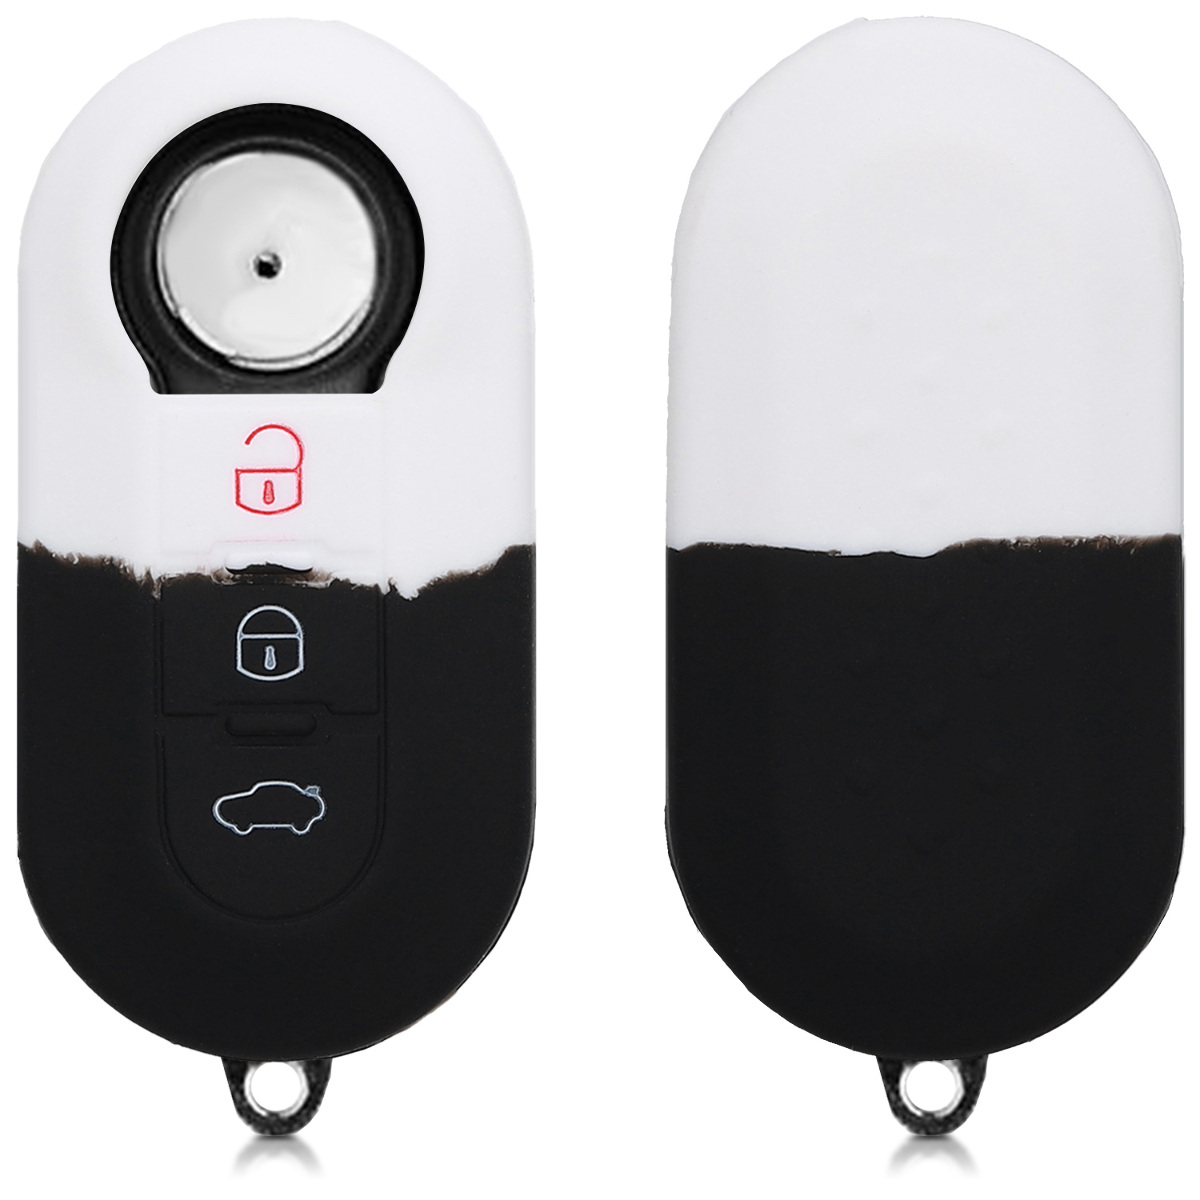 Bicolor White//Black Silicone Protective Key Fob Cover kwmobile Car Key Cover Compatible with Fiat Lancia 3 Button Car Flip Key